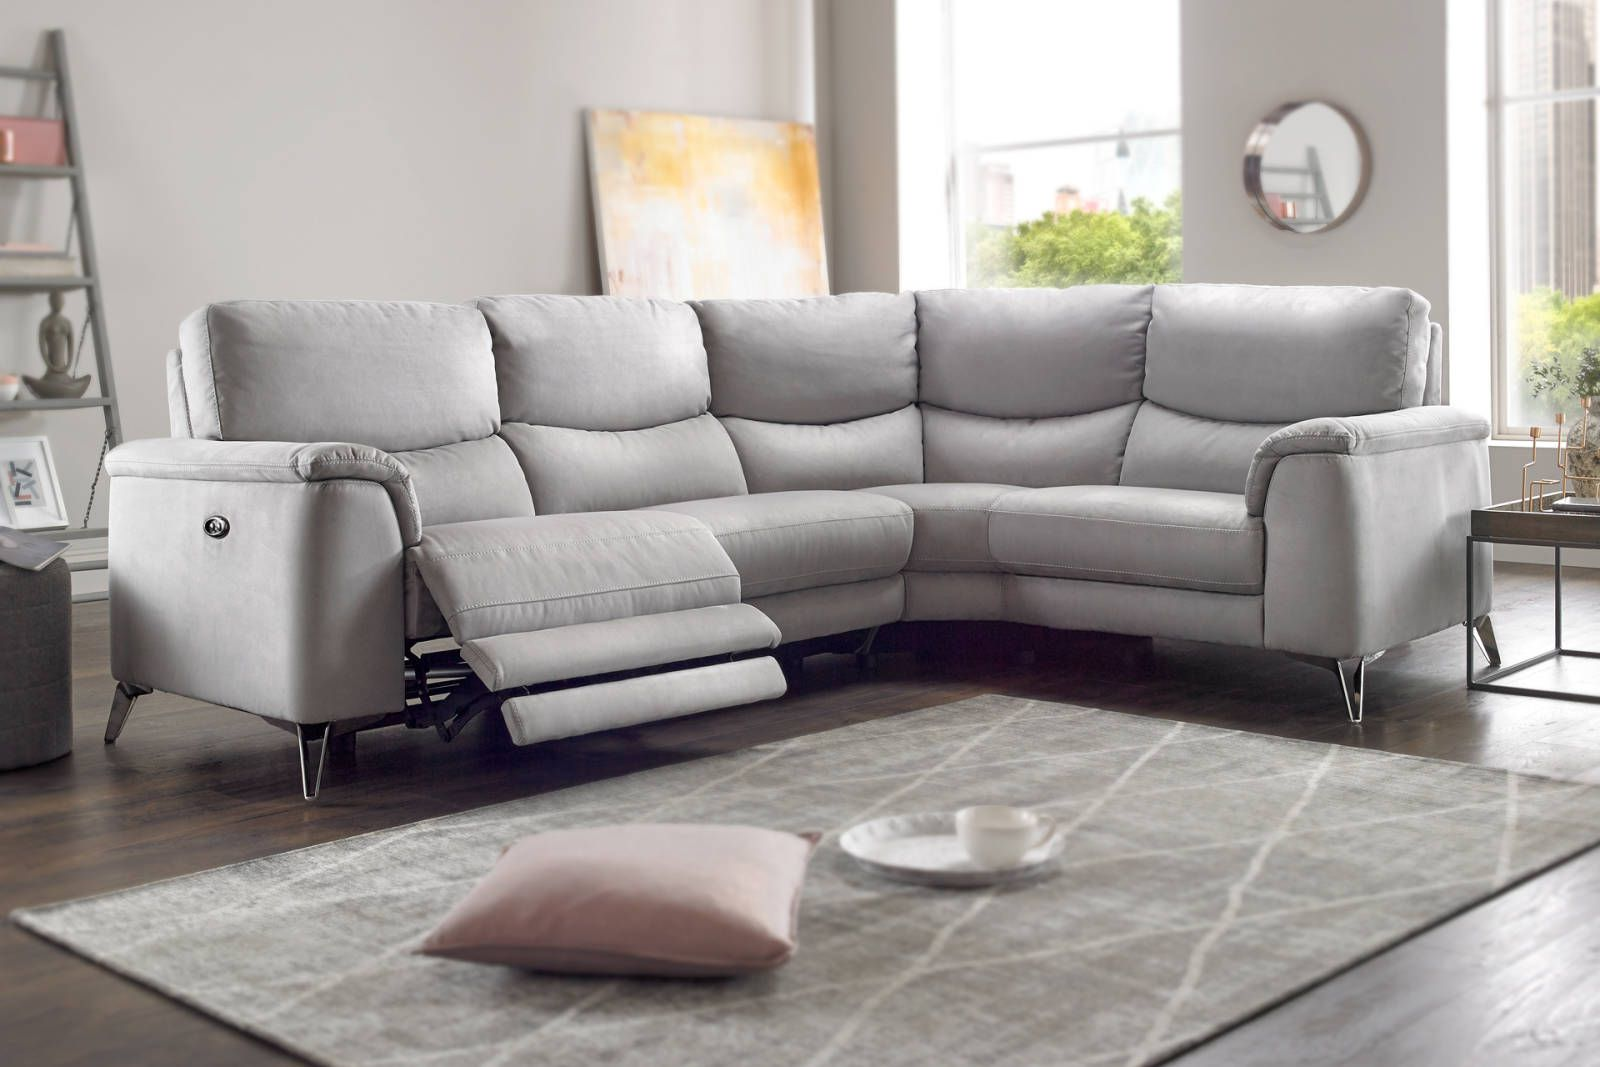 Parma Sofology Corner Sofa Living Room Recliner Corner Sofa Reclining Sofa Living Room